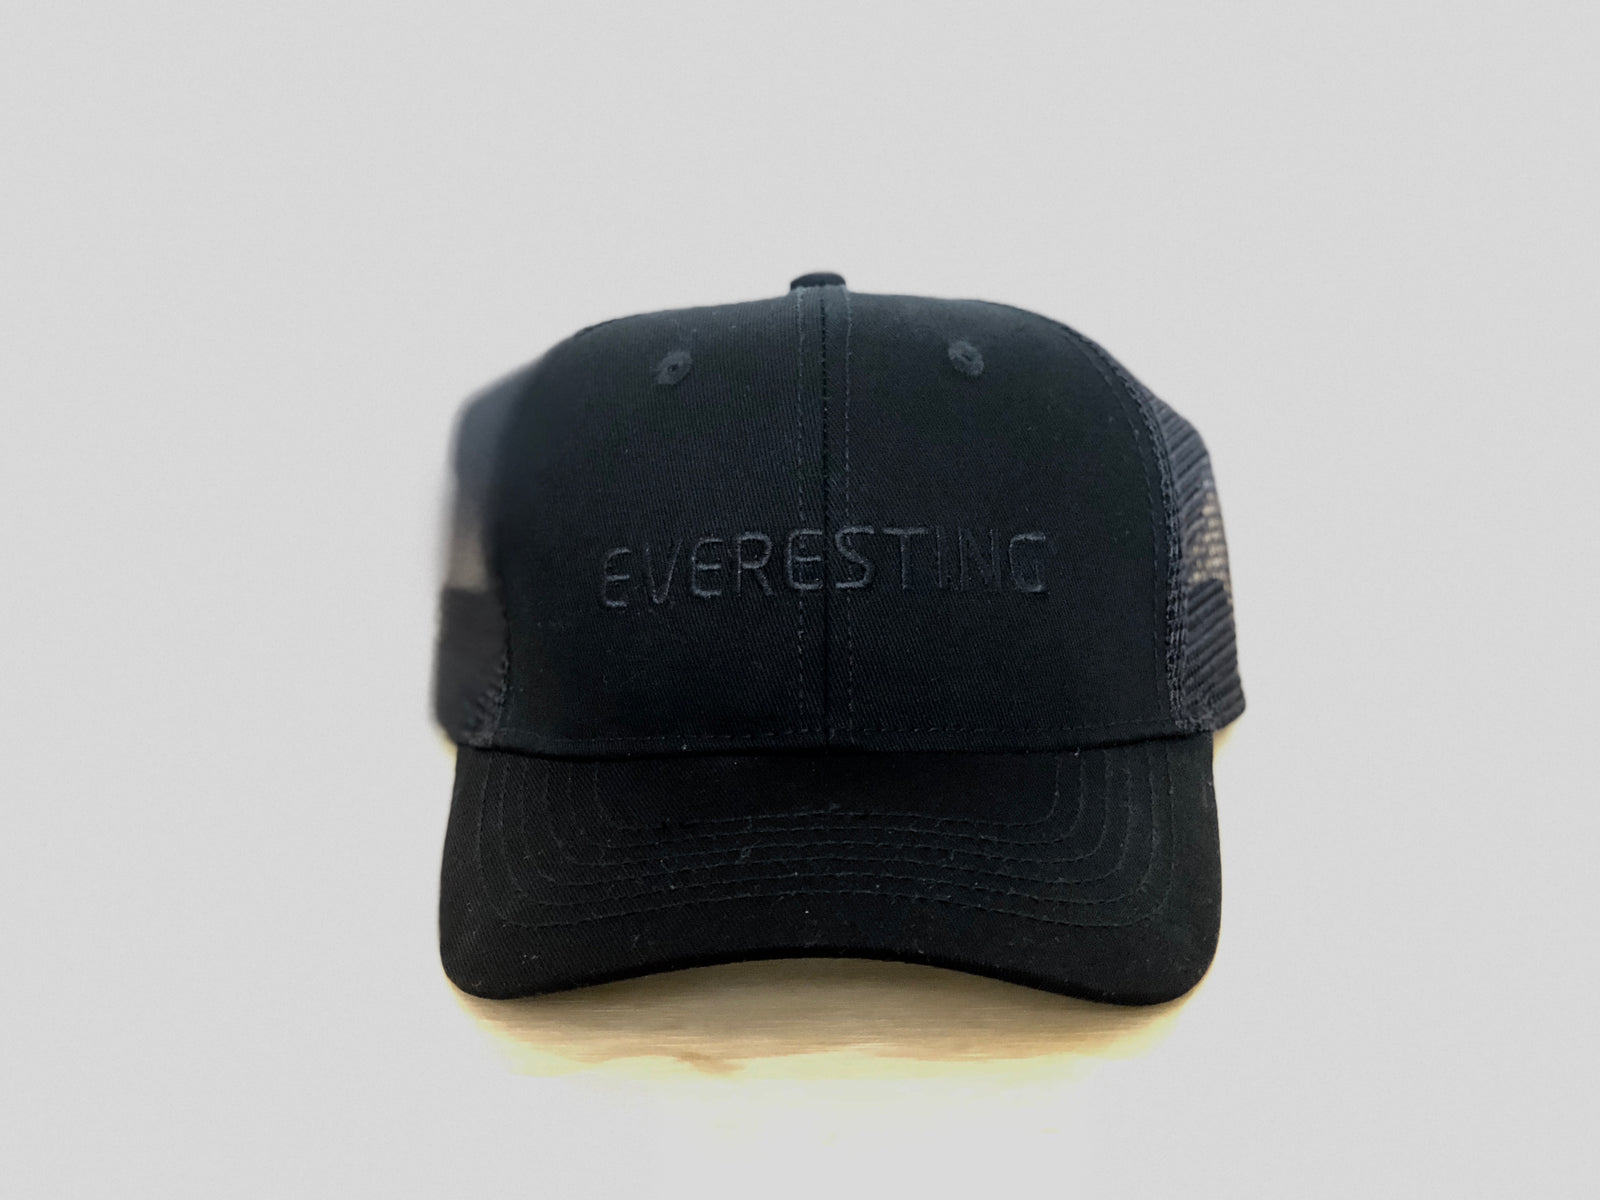 Everesting Trucker Cap